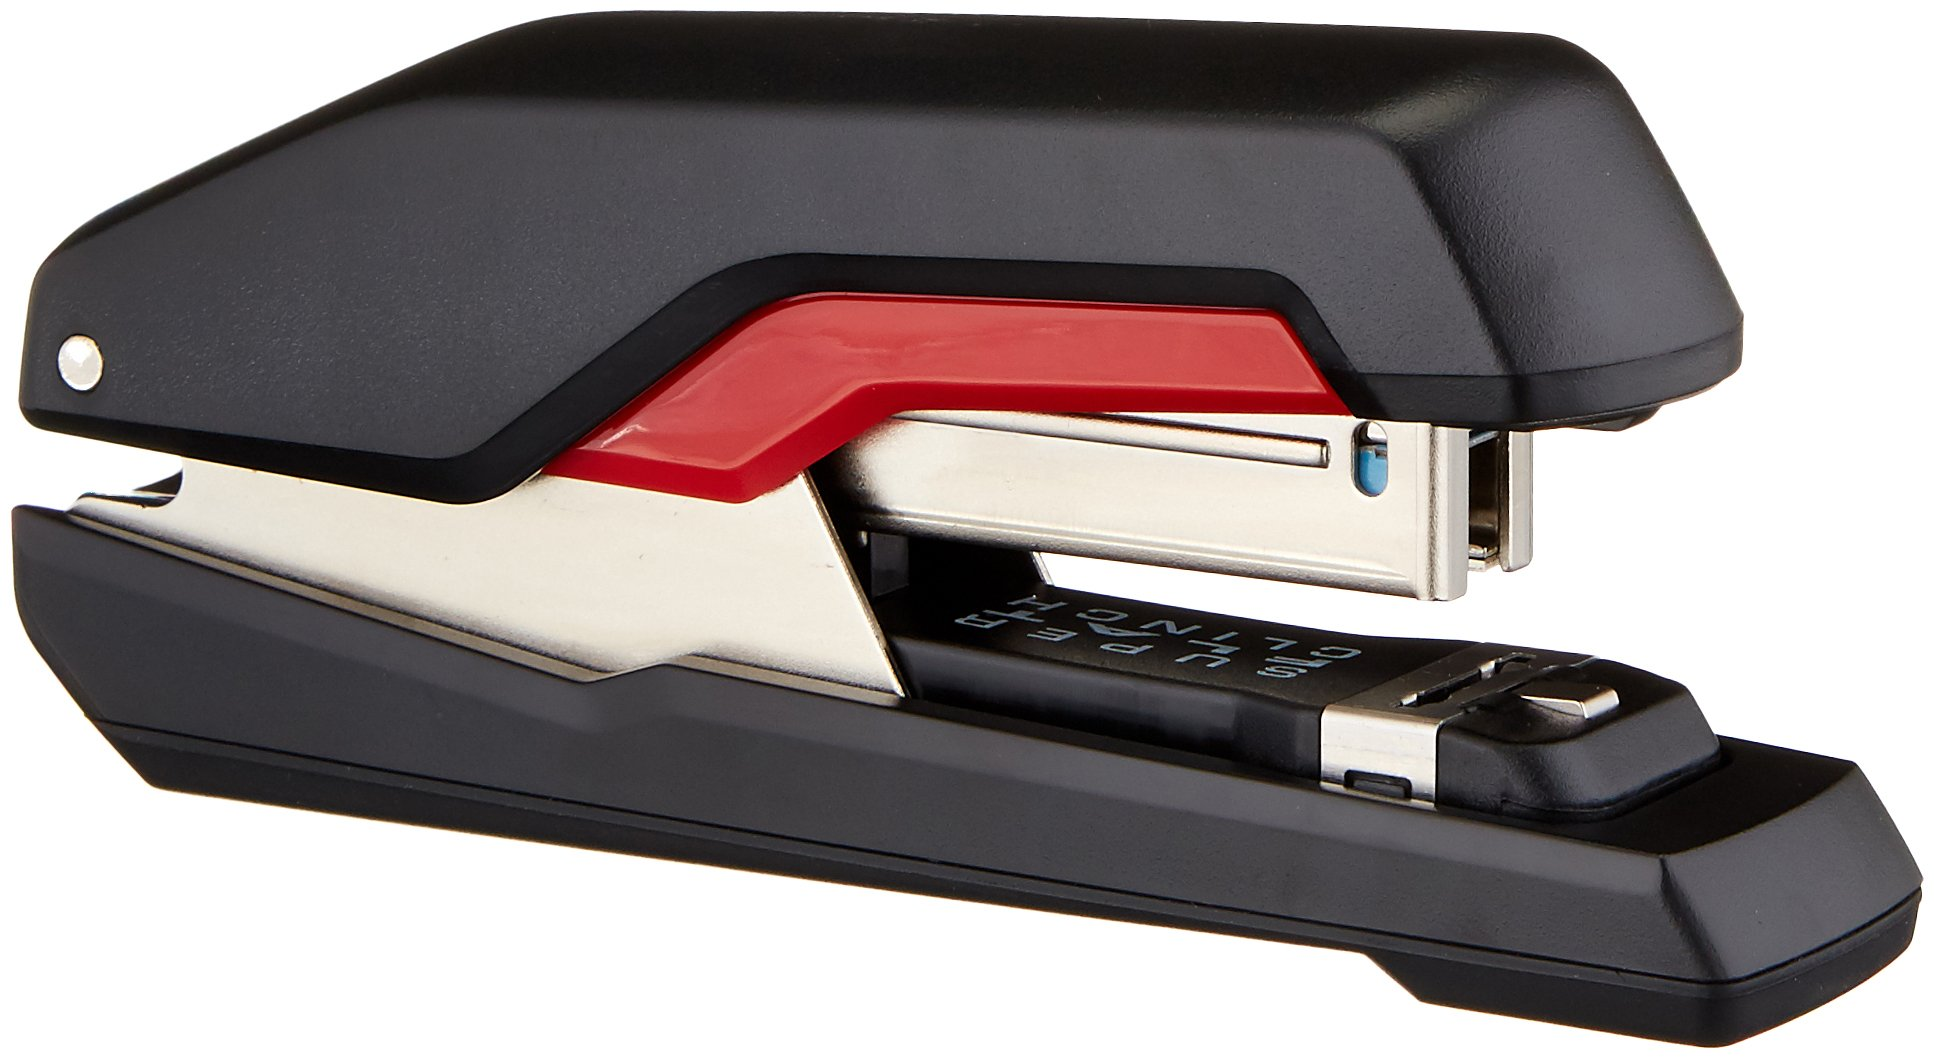 Xyron 5000599 Rapid Supreme SuperFlatClinch S50 Halfstrip Stapler, Black/Red